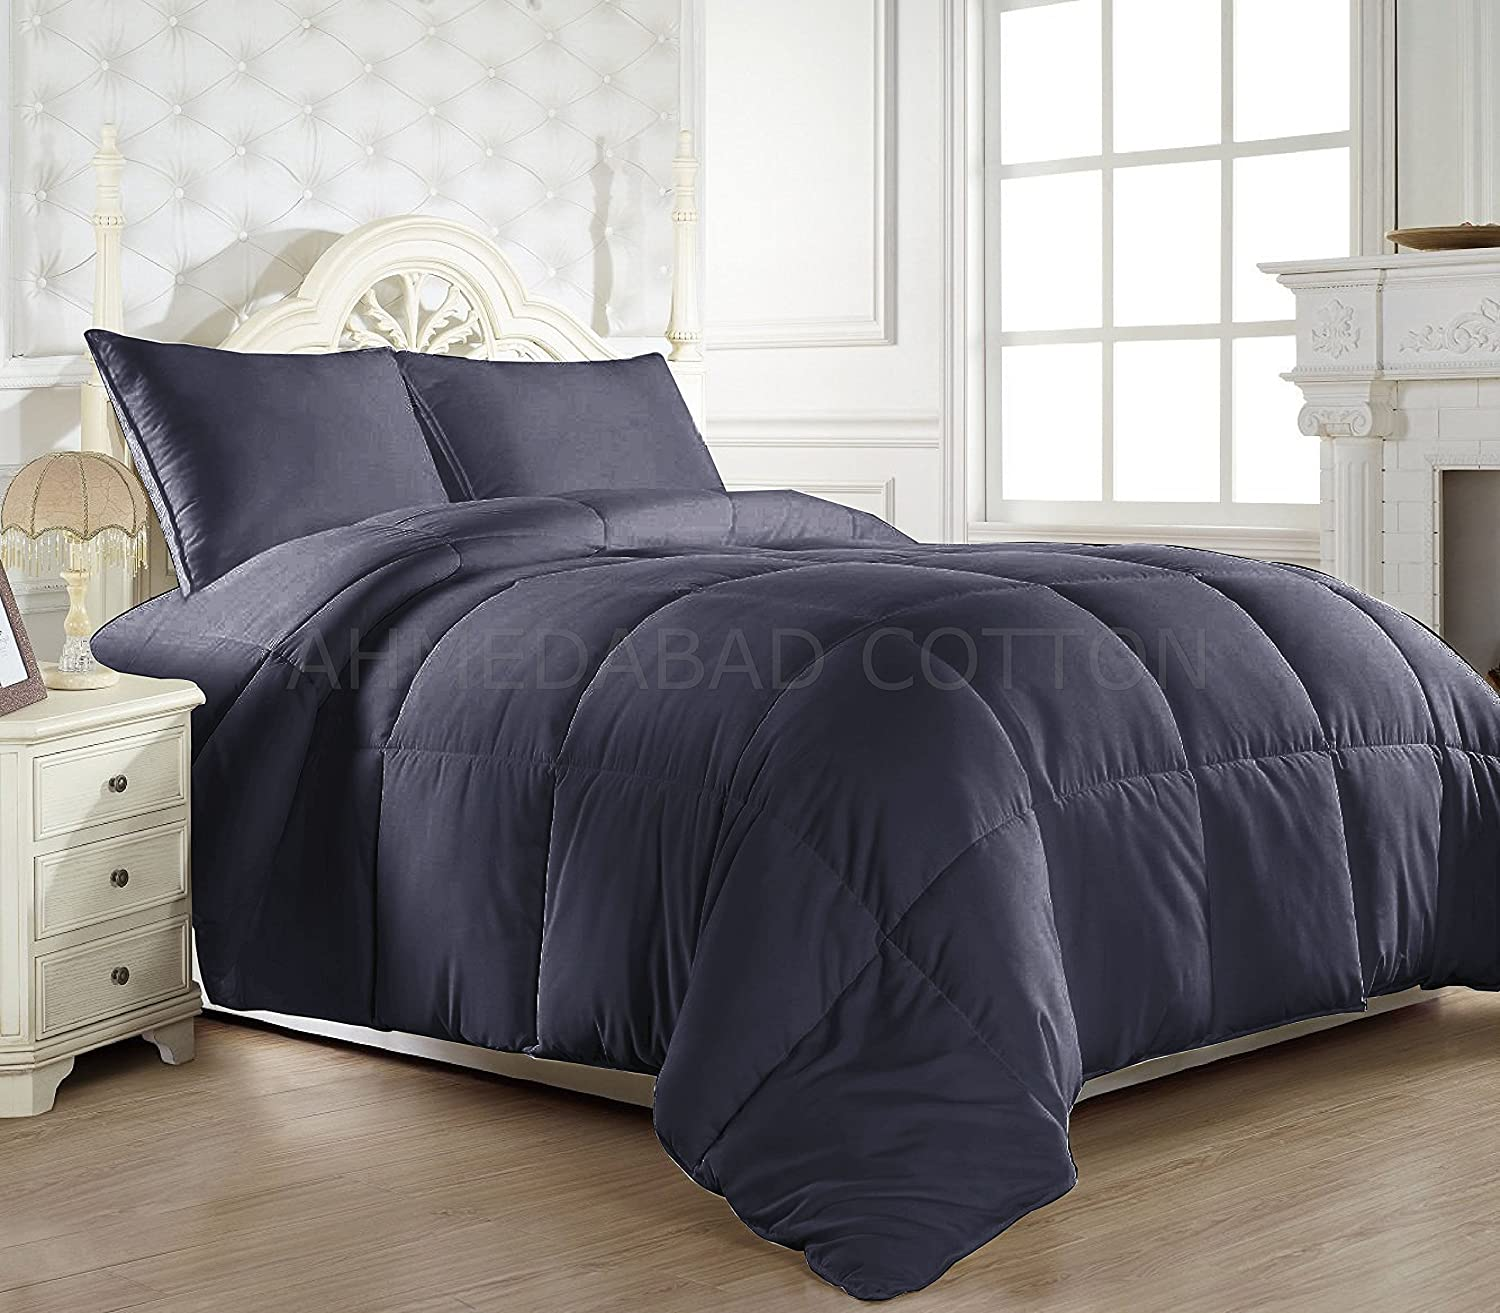 hamilton set comforter tweed dark bedding grey black p